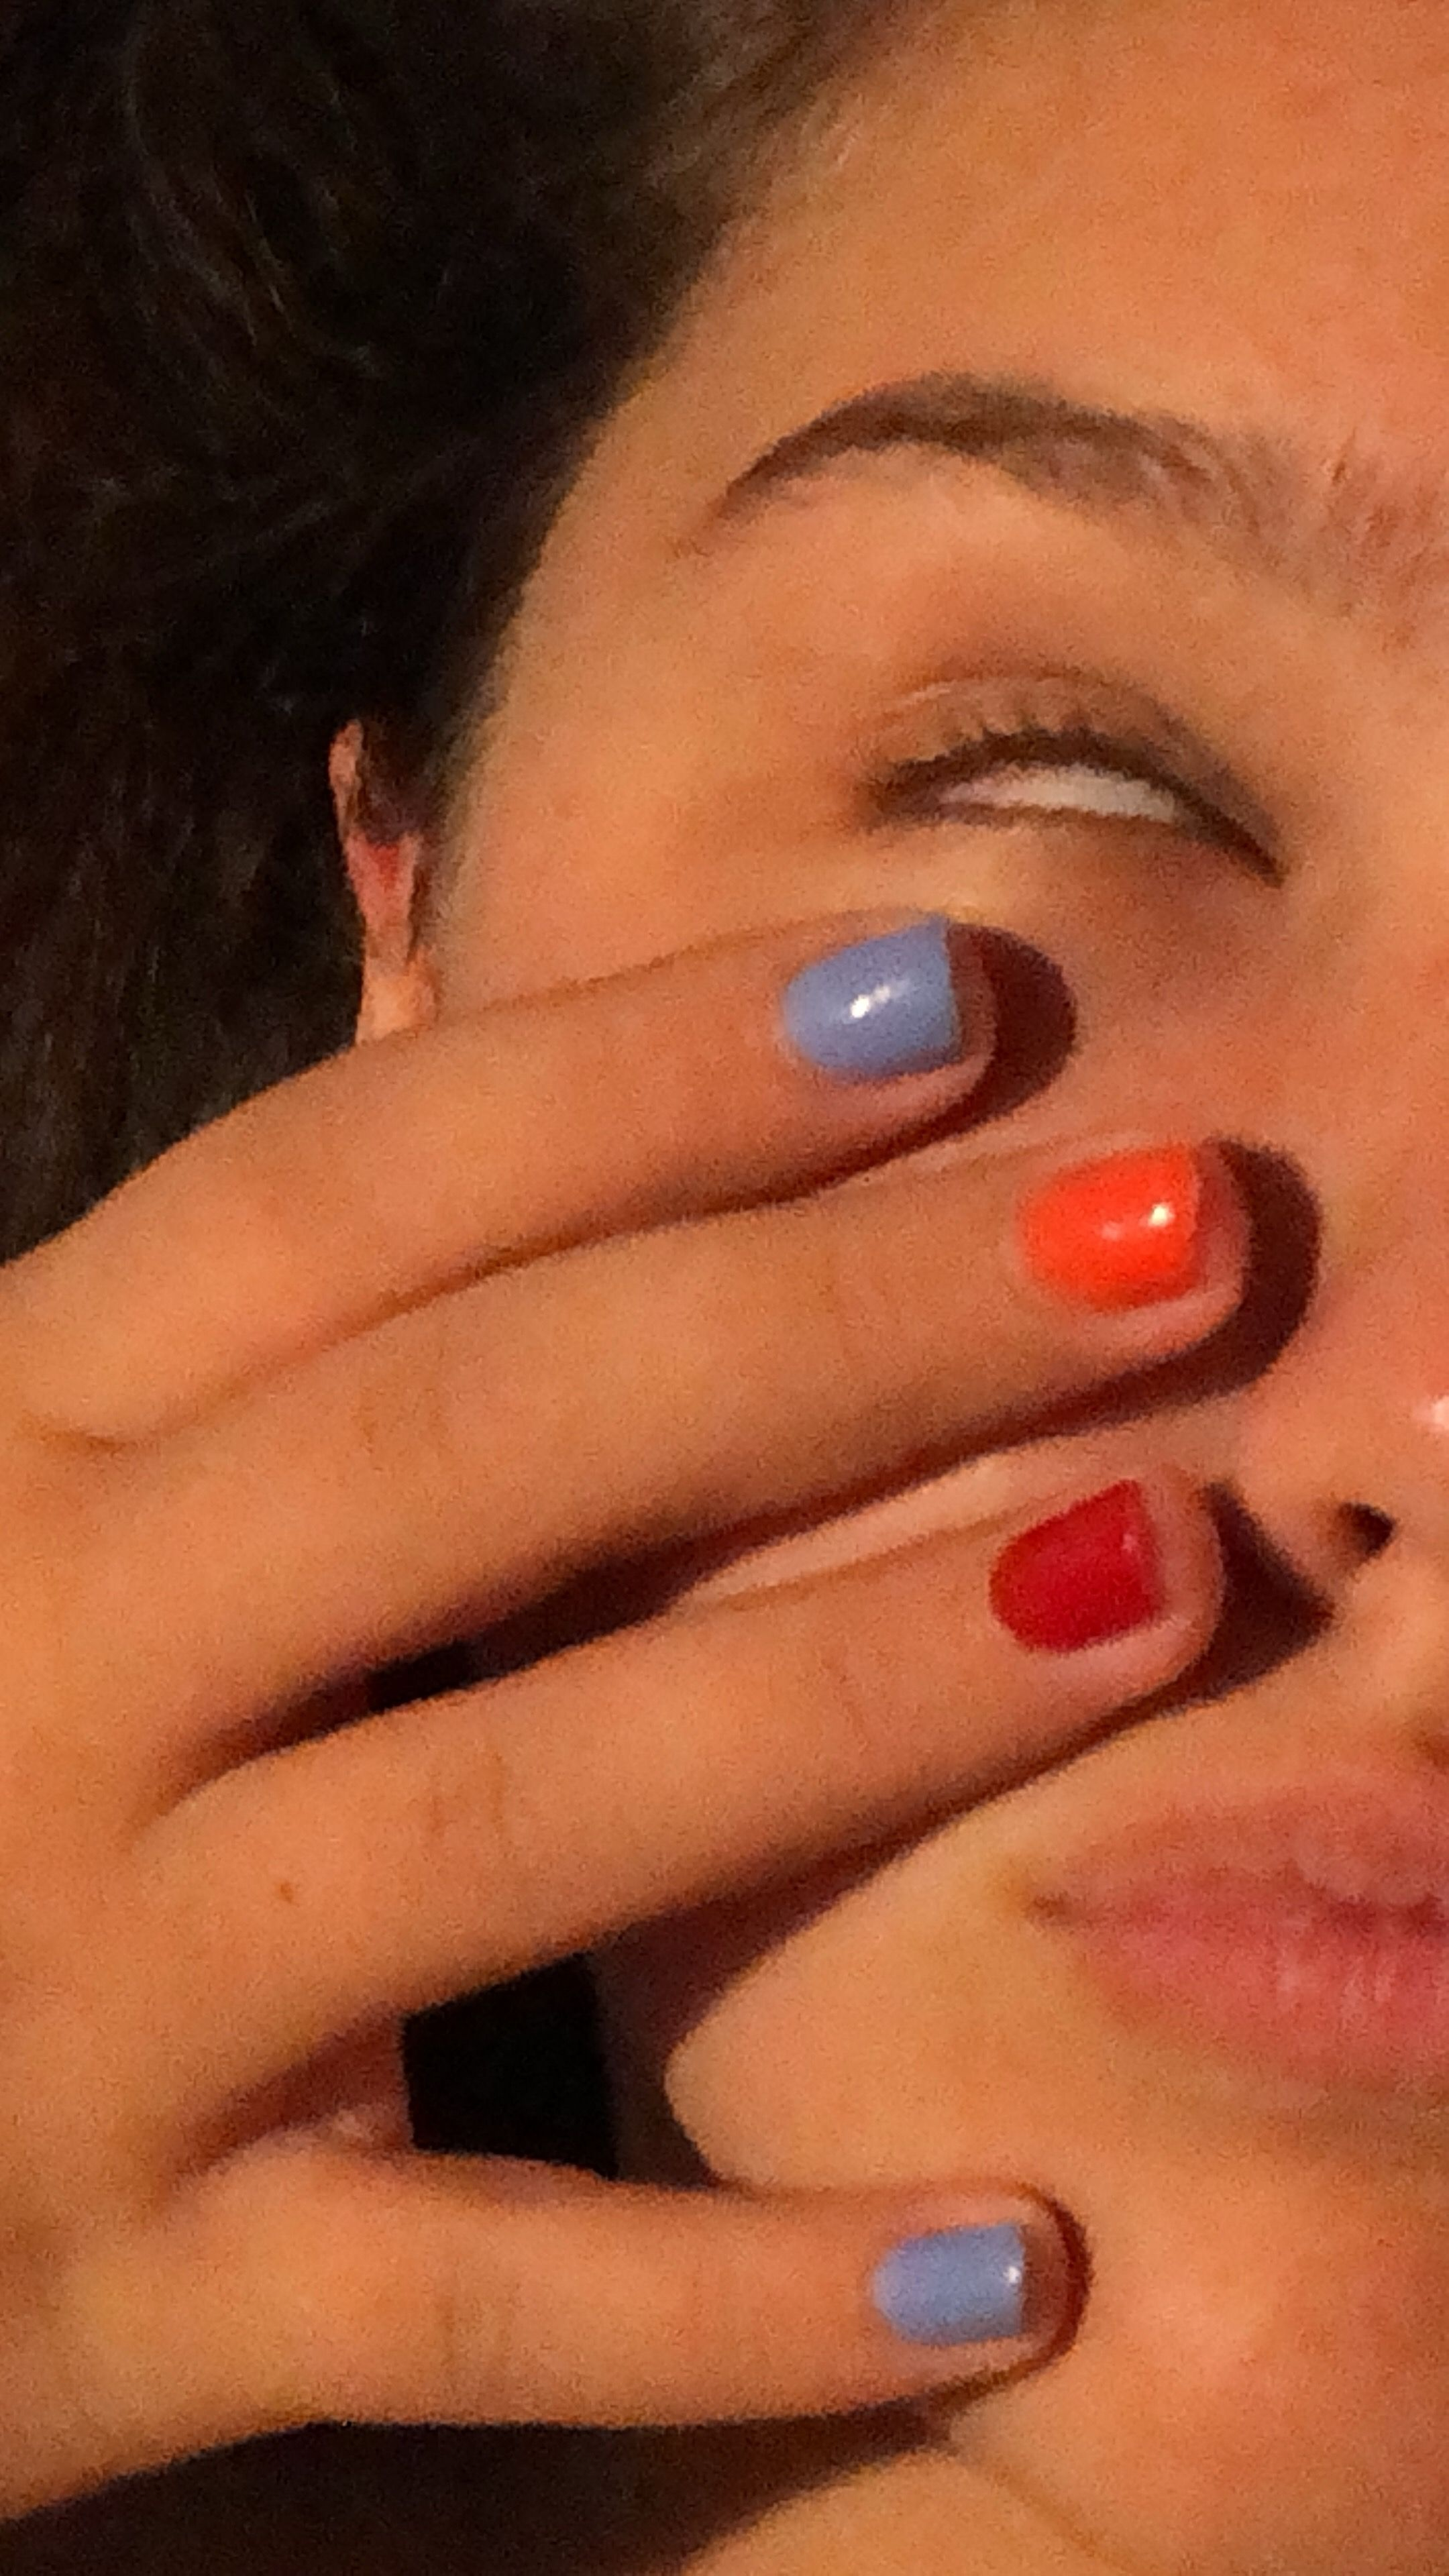 Aesthetic Aesthetic 90s 90sstyle Cute Retro Nails Vintage Nails 90s Nails